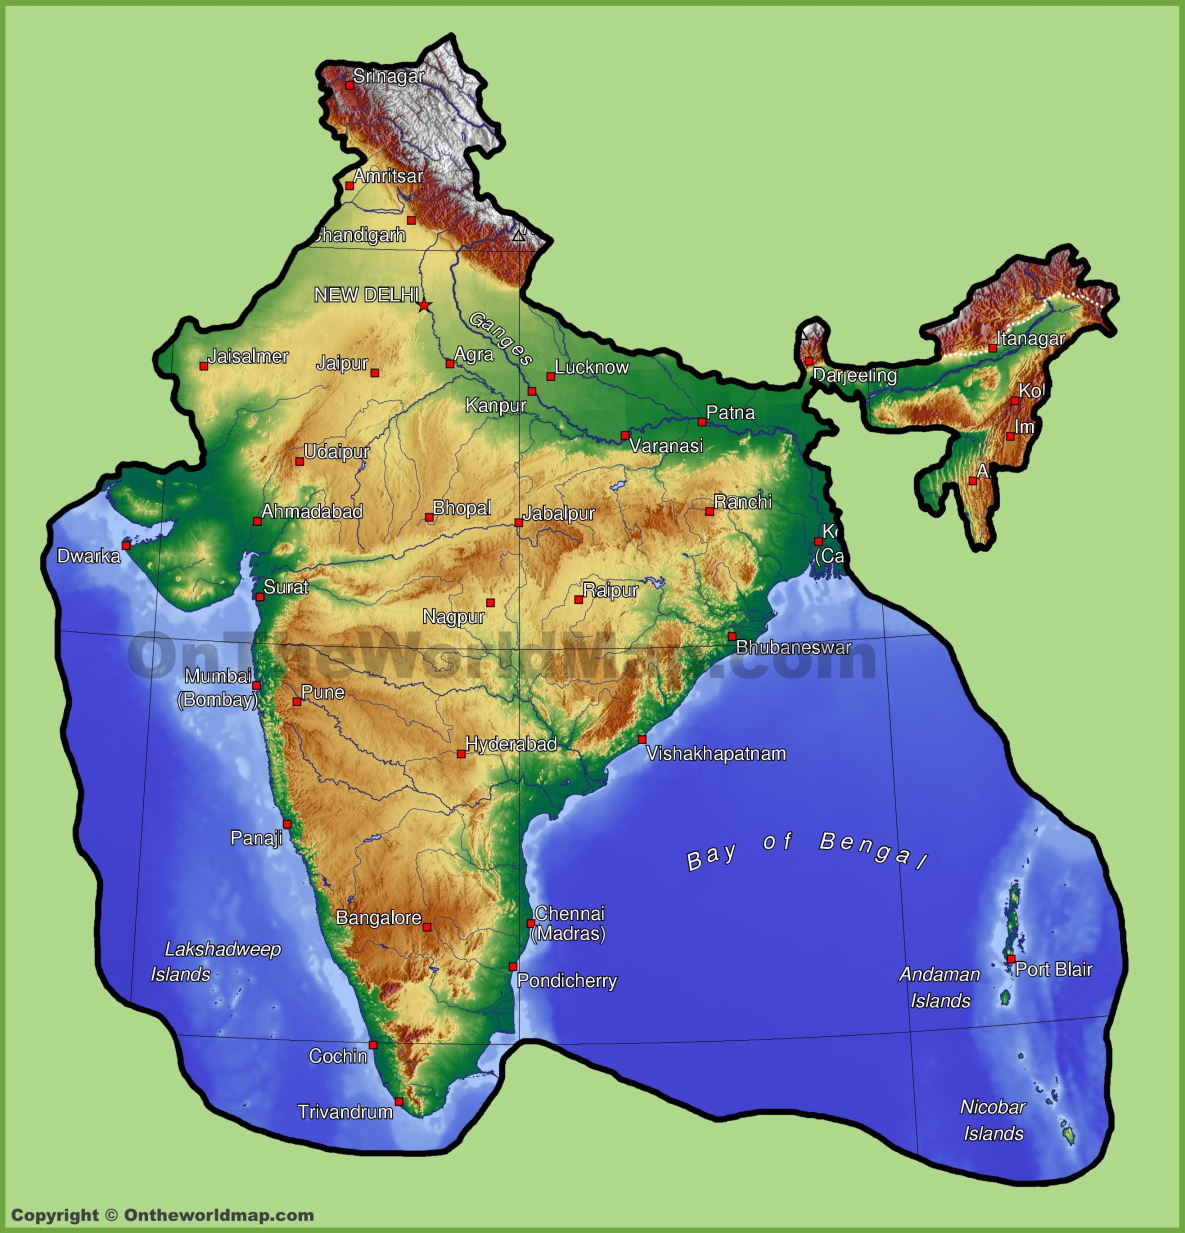 India Maps Maps Of India - India map